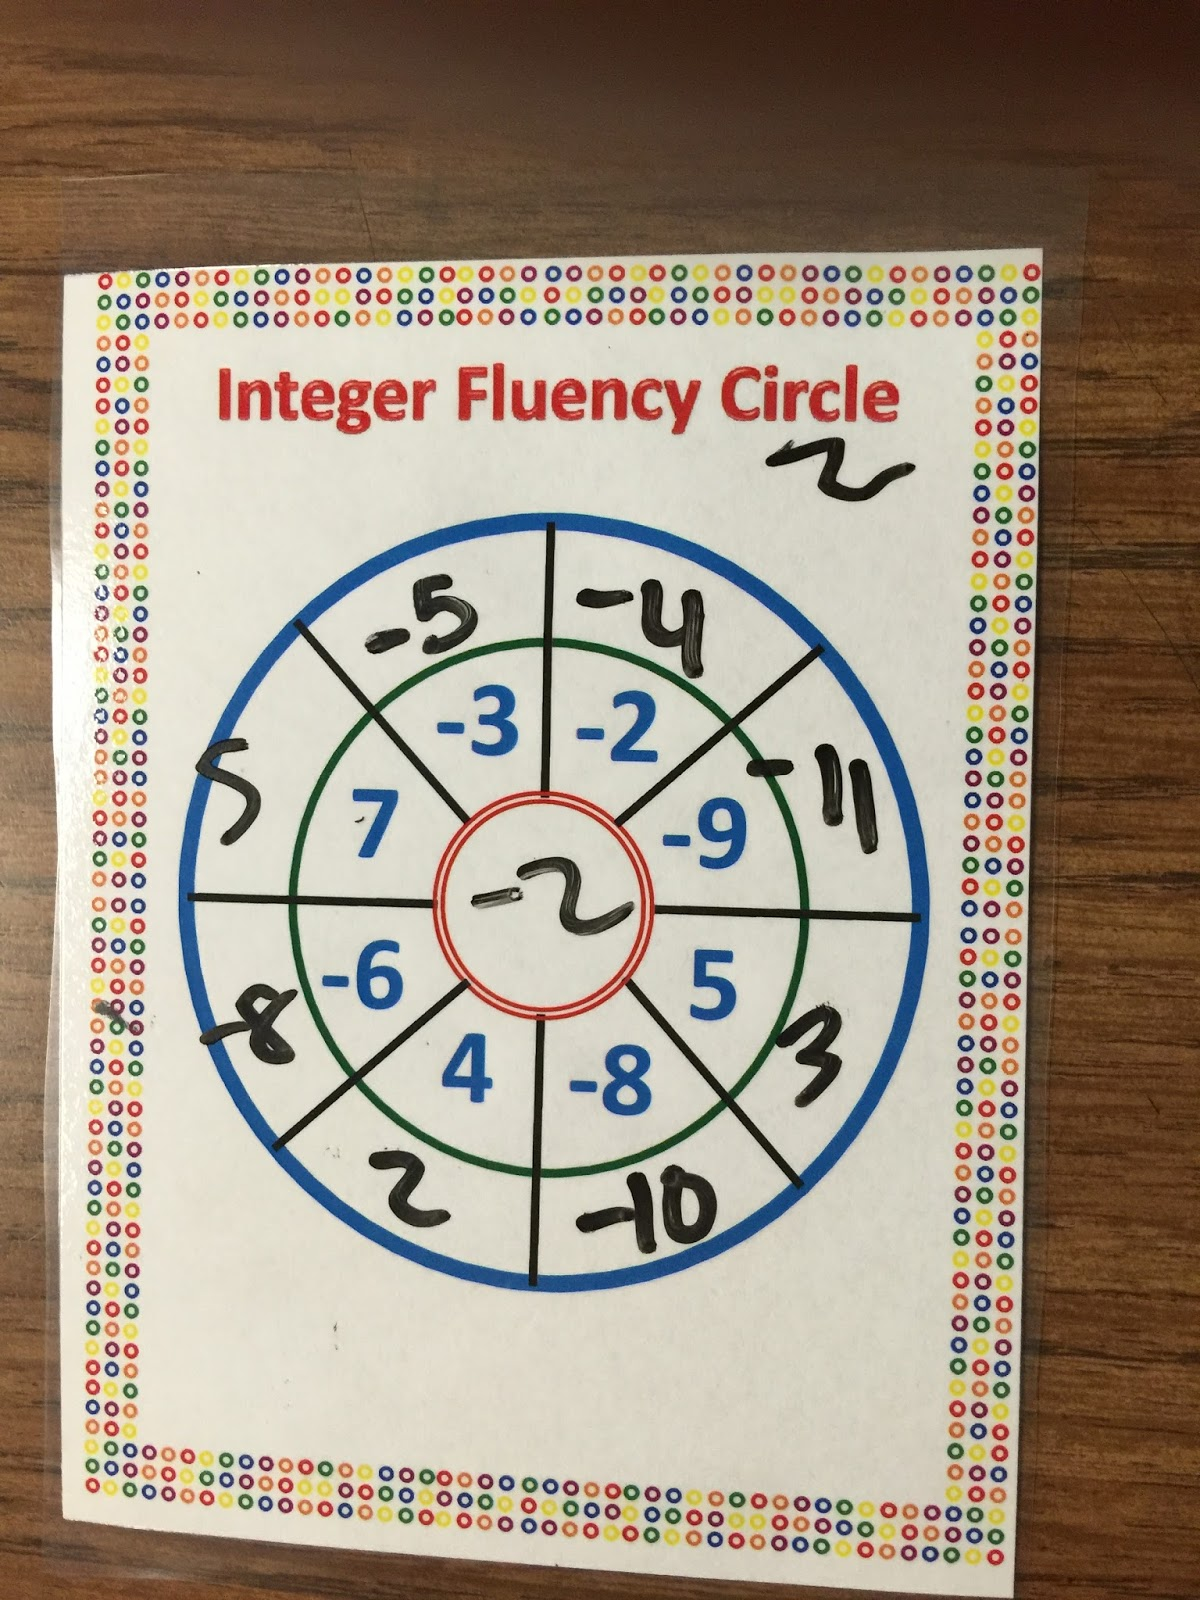 My Math Imagination Integer Fluency